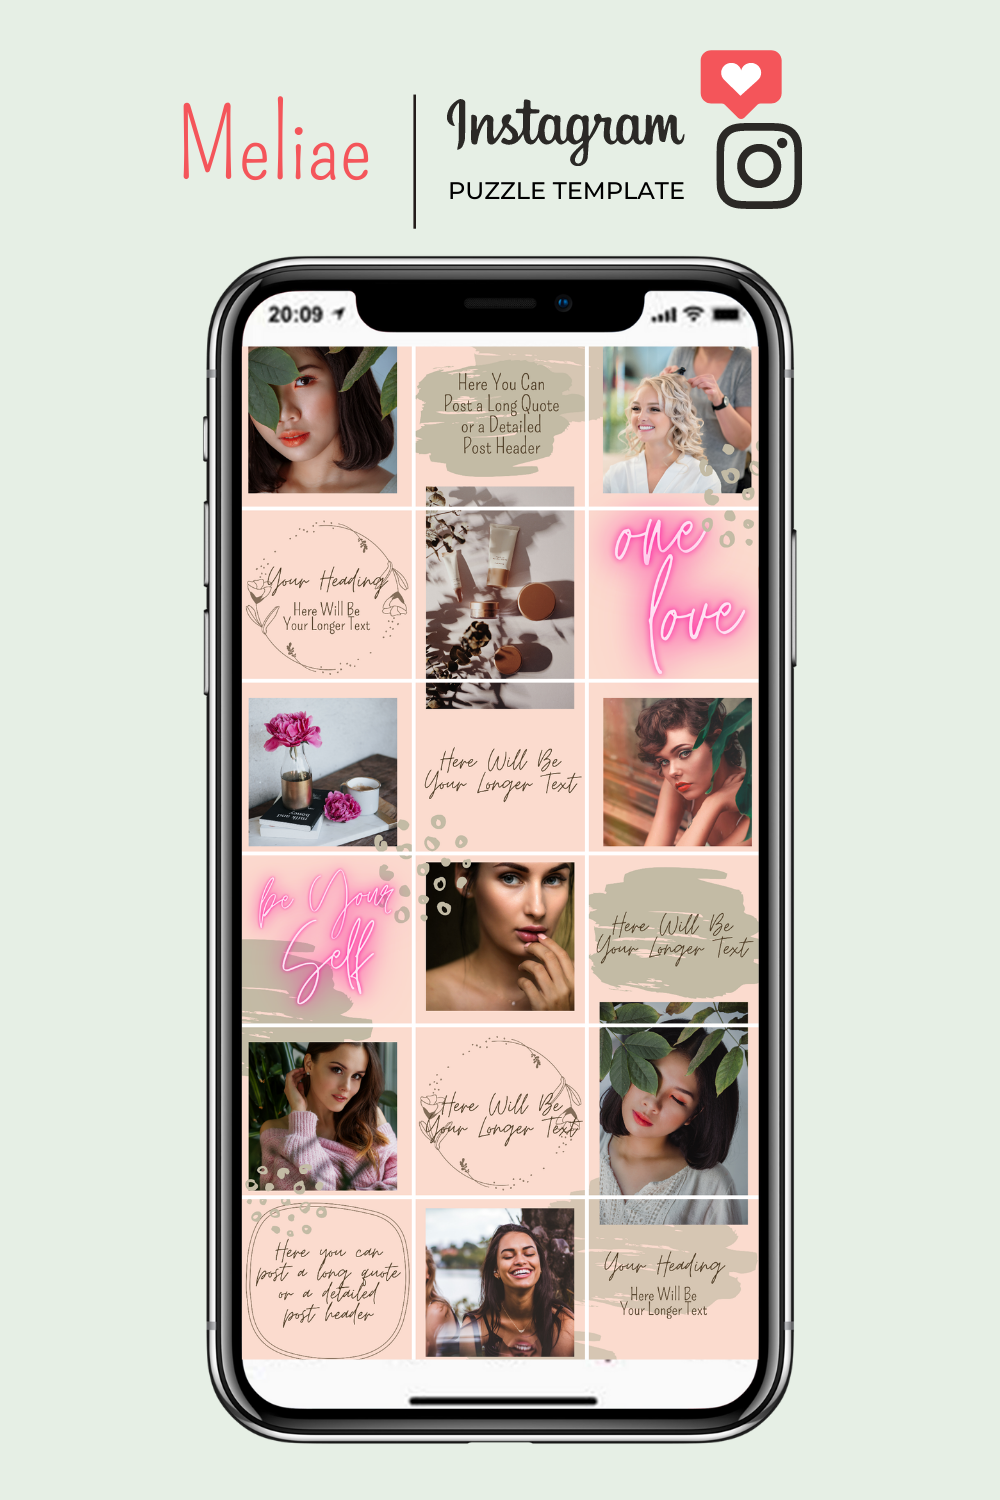 #canvatemplate #instagrambranding #posttemplate #instagrampost #instagramfashion #instagramcanva #puzzletemplate #instagramfeed #instagrameditable #instagramtheme #feeddesign #puzzlepost #instagrampost #canva #instagrampuzzle